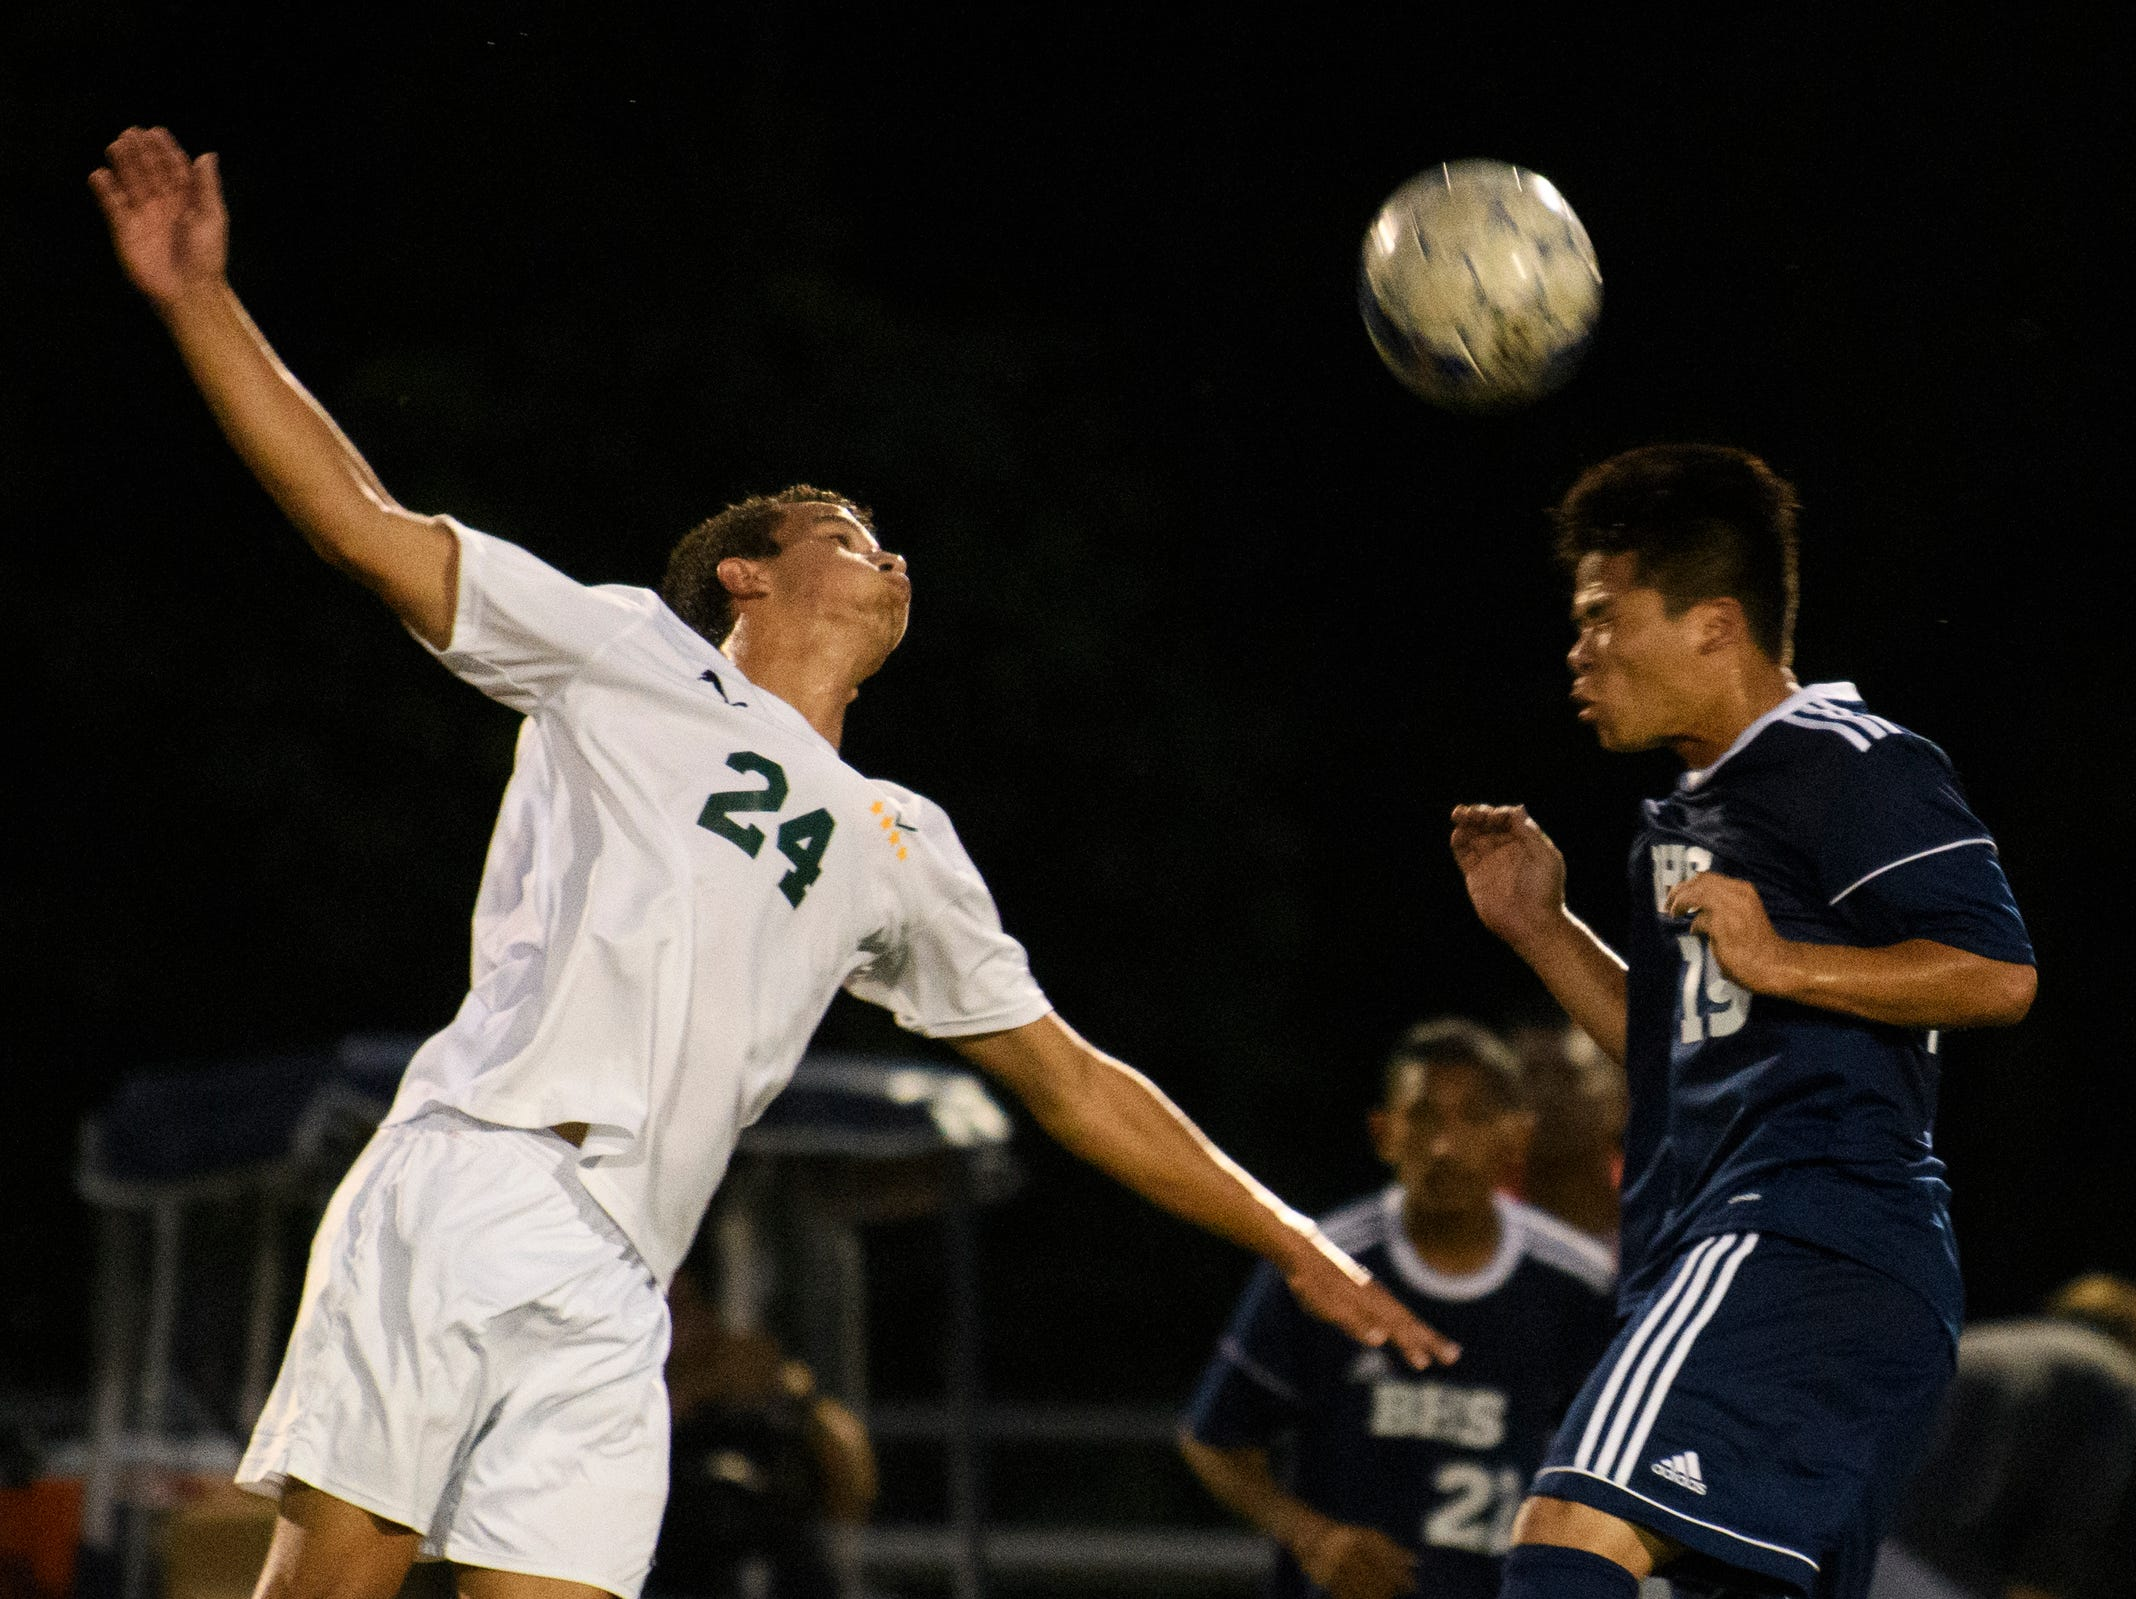 Burlington's Roman Magar (19) leaps to head the ball over Stowe's Rai Bleda-Vilalta (24) during the boys soccer game between Stowe and Burlington at Buck Hard field on Wednesday night September 5, 2018 in Burlington.